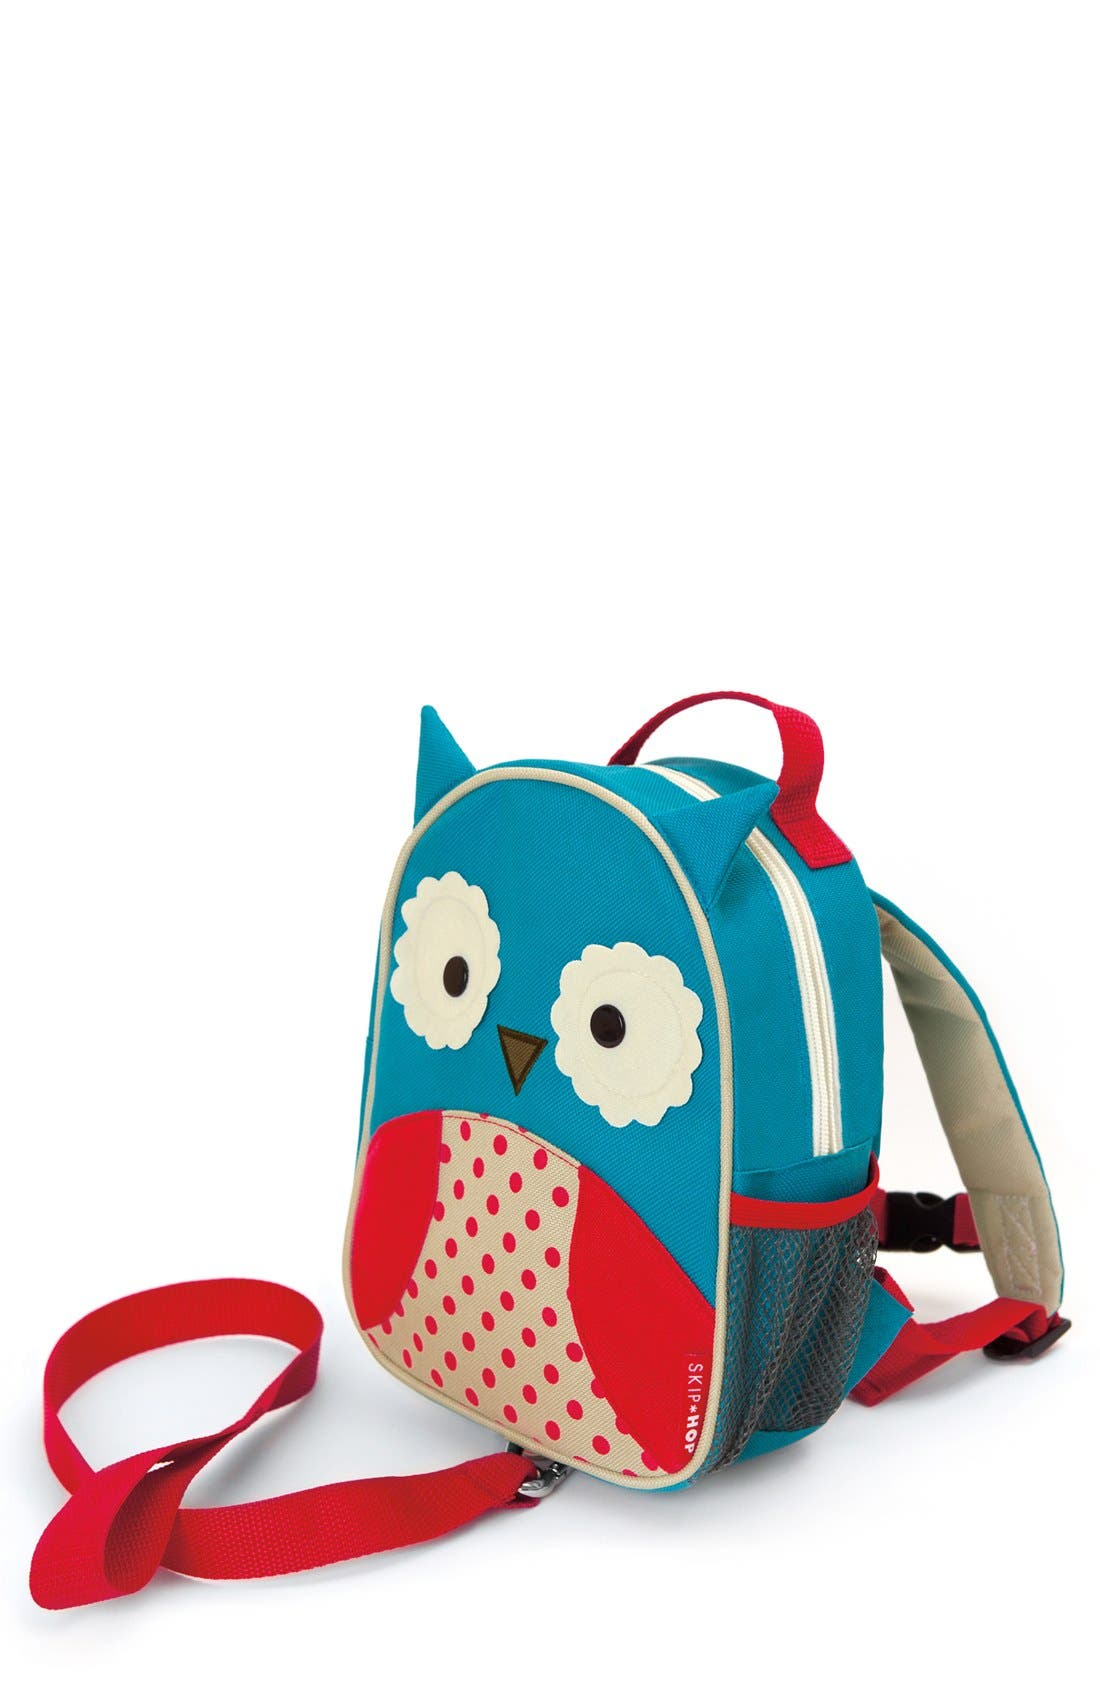 Monkey Zoo Safety Harness Backpack, Main, color, OWL